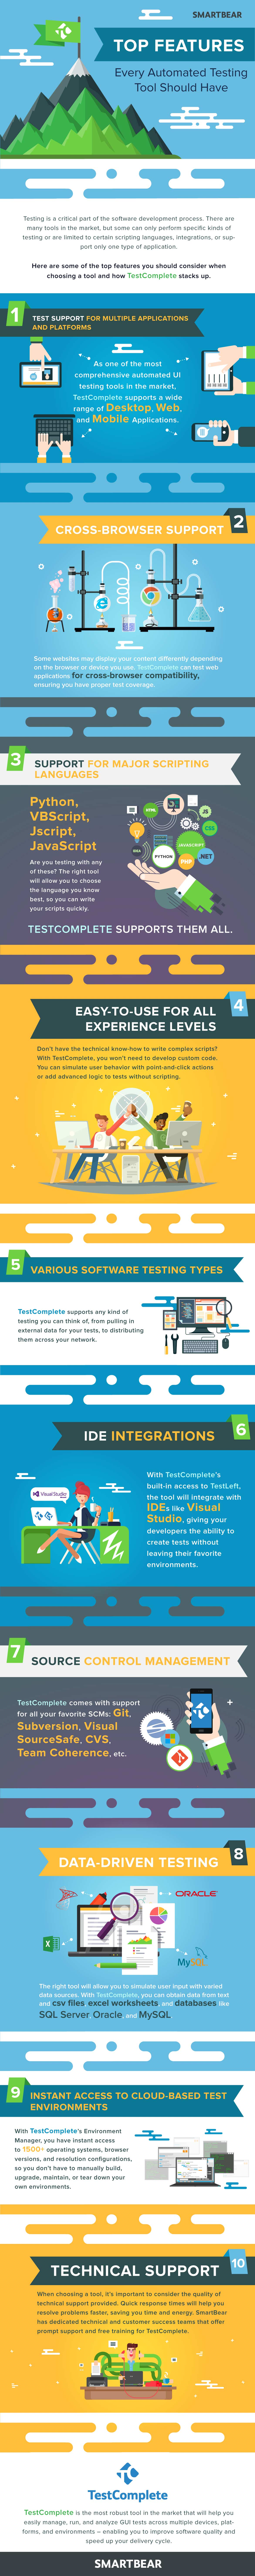 10 Key Features to Consider When Choosing an Automated UI Testing Tool